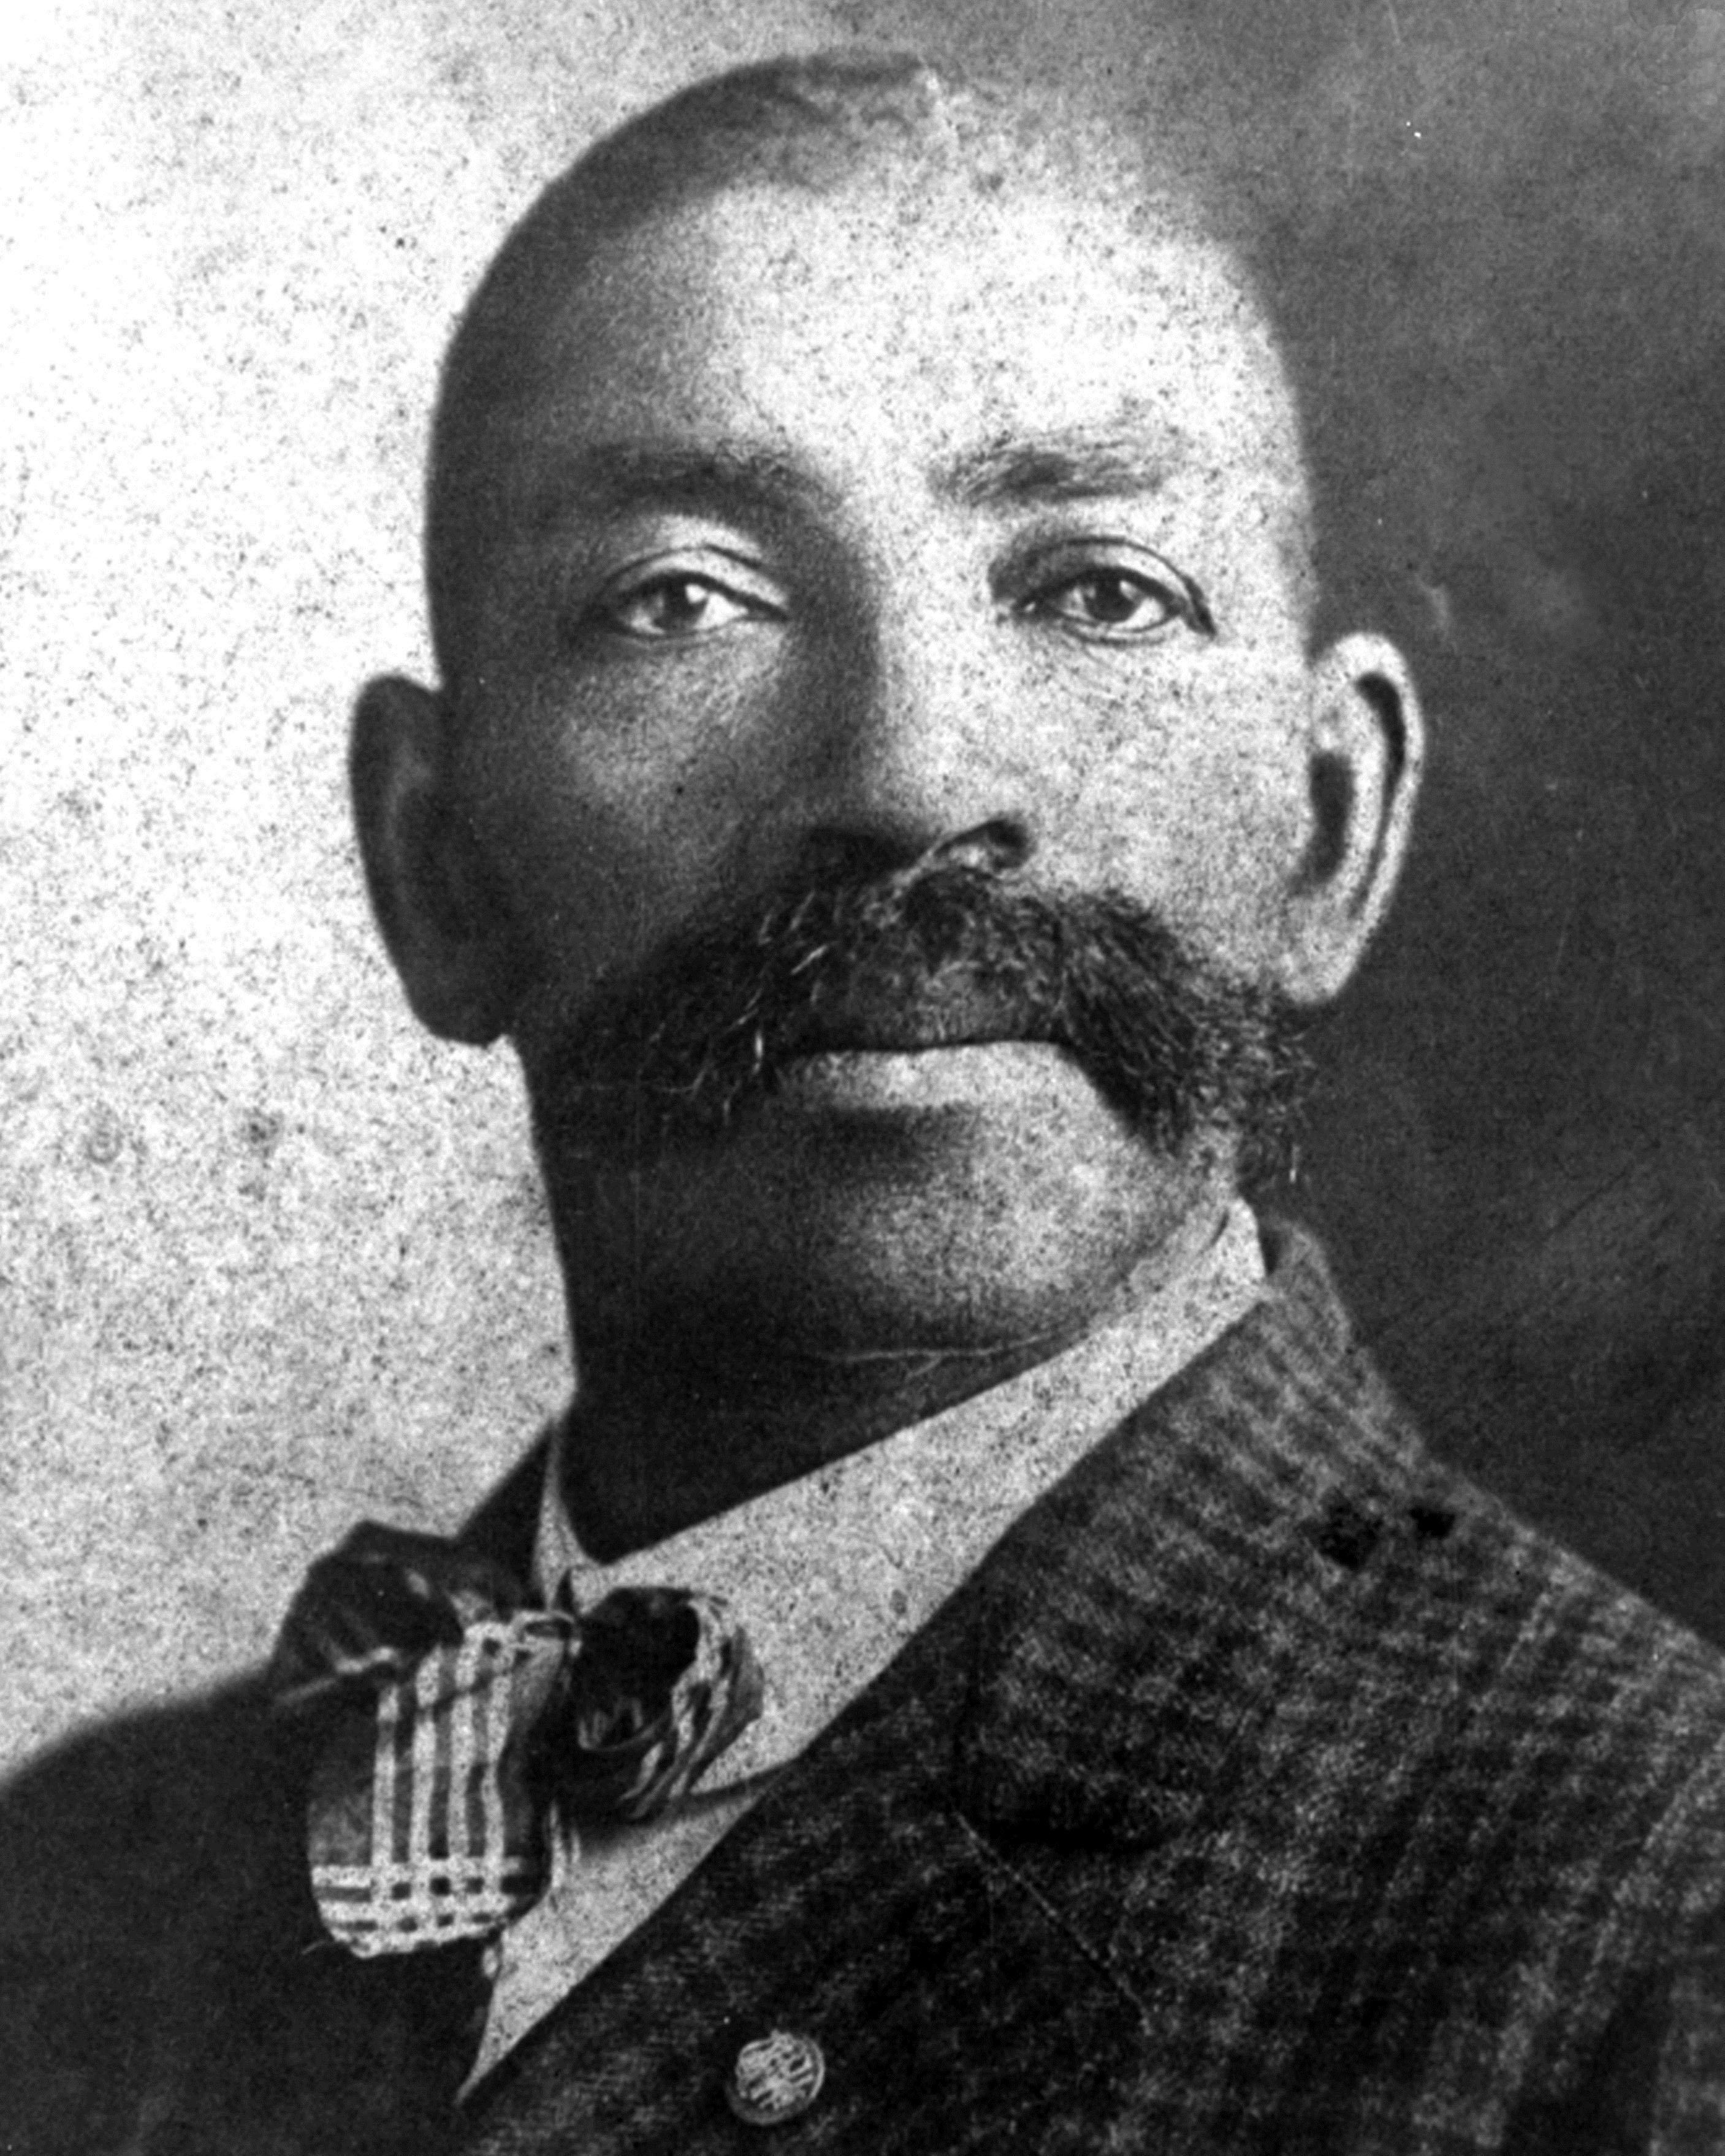 Bass Reeves. (Credit: Public Domain)